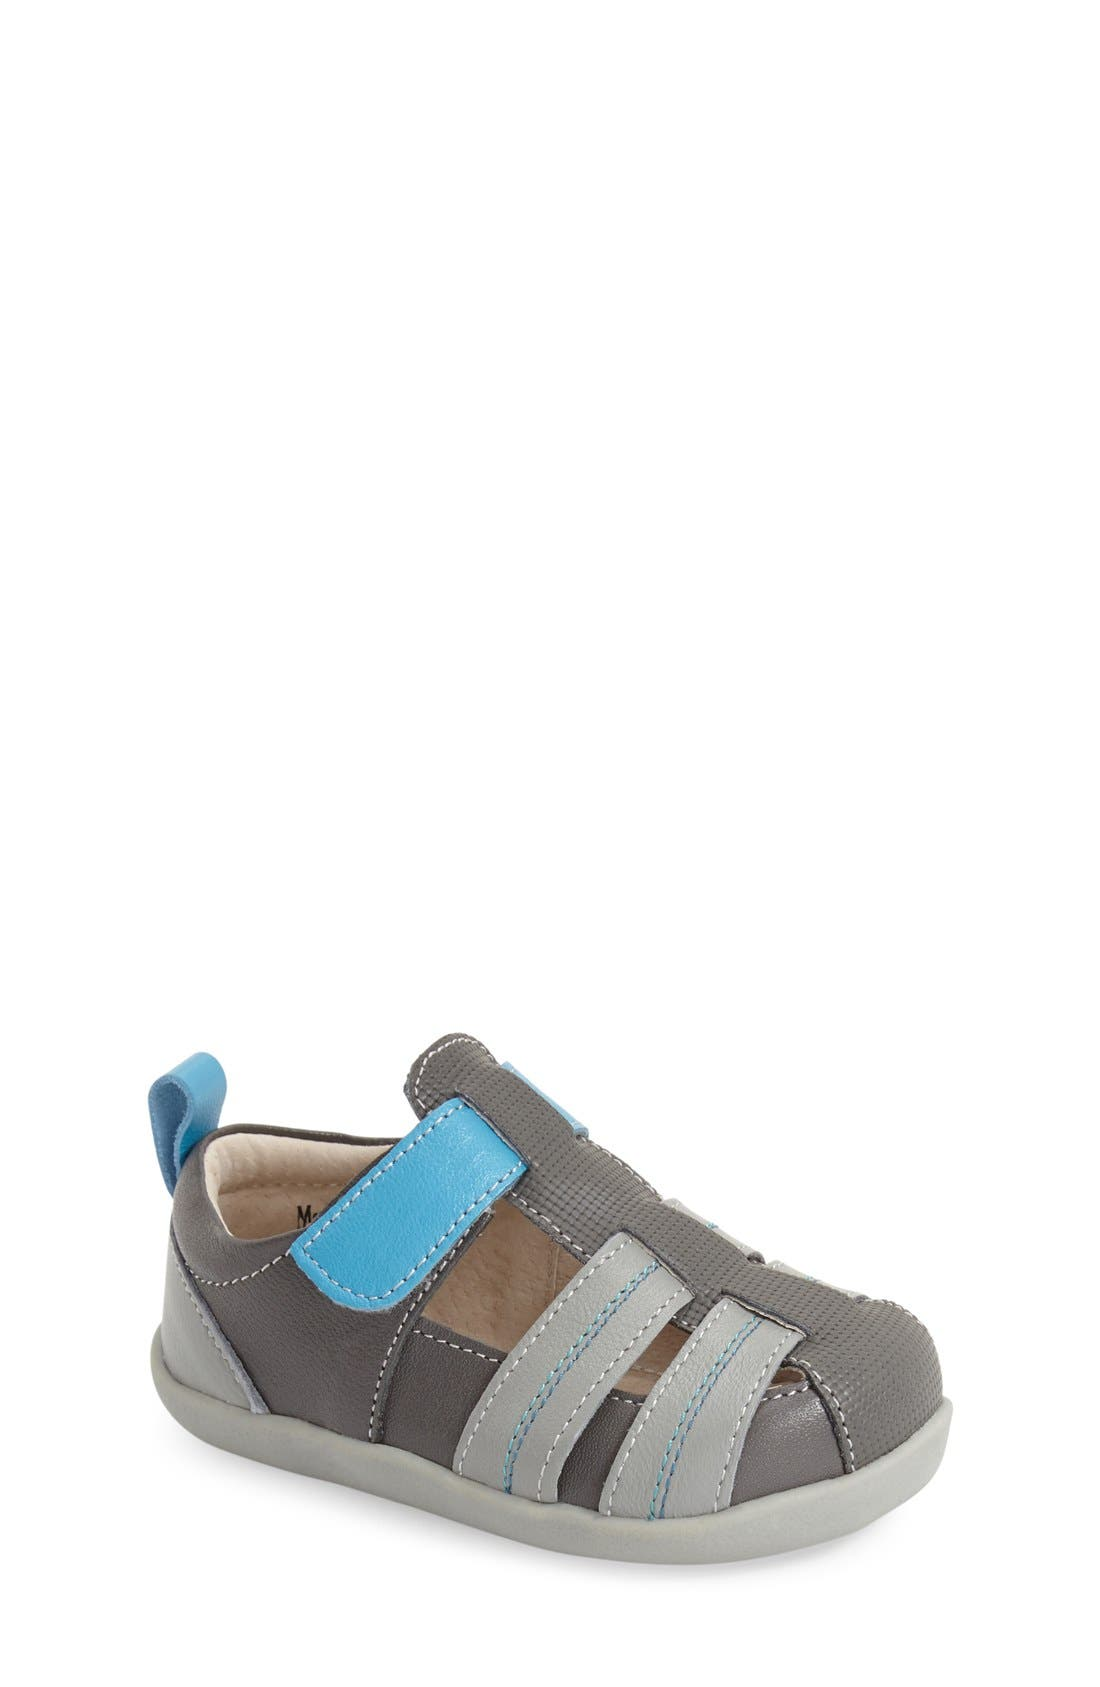 See Kai Run 'Caleb' Leather Fisherman Sandal (Baby & Walker)